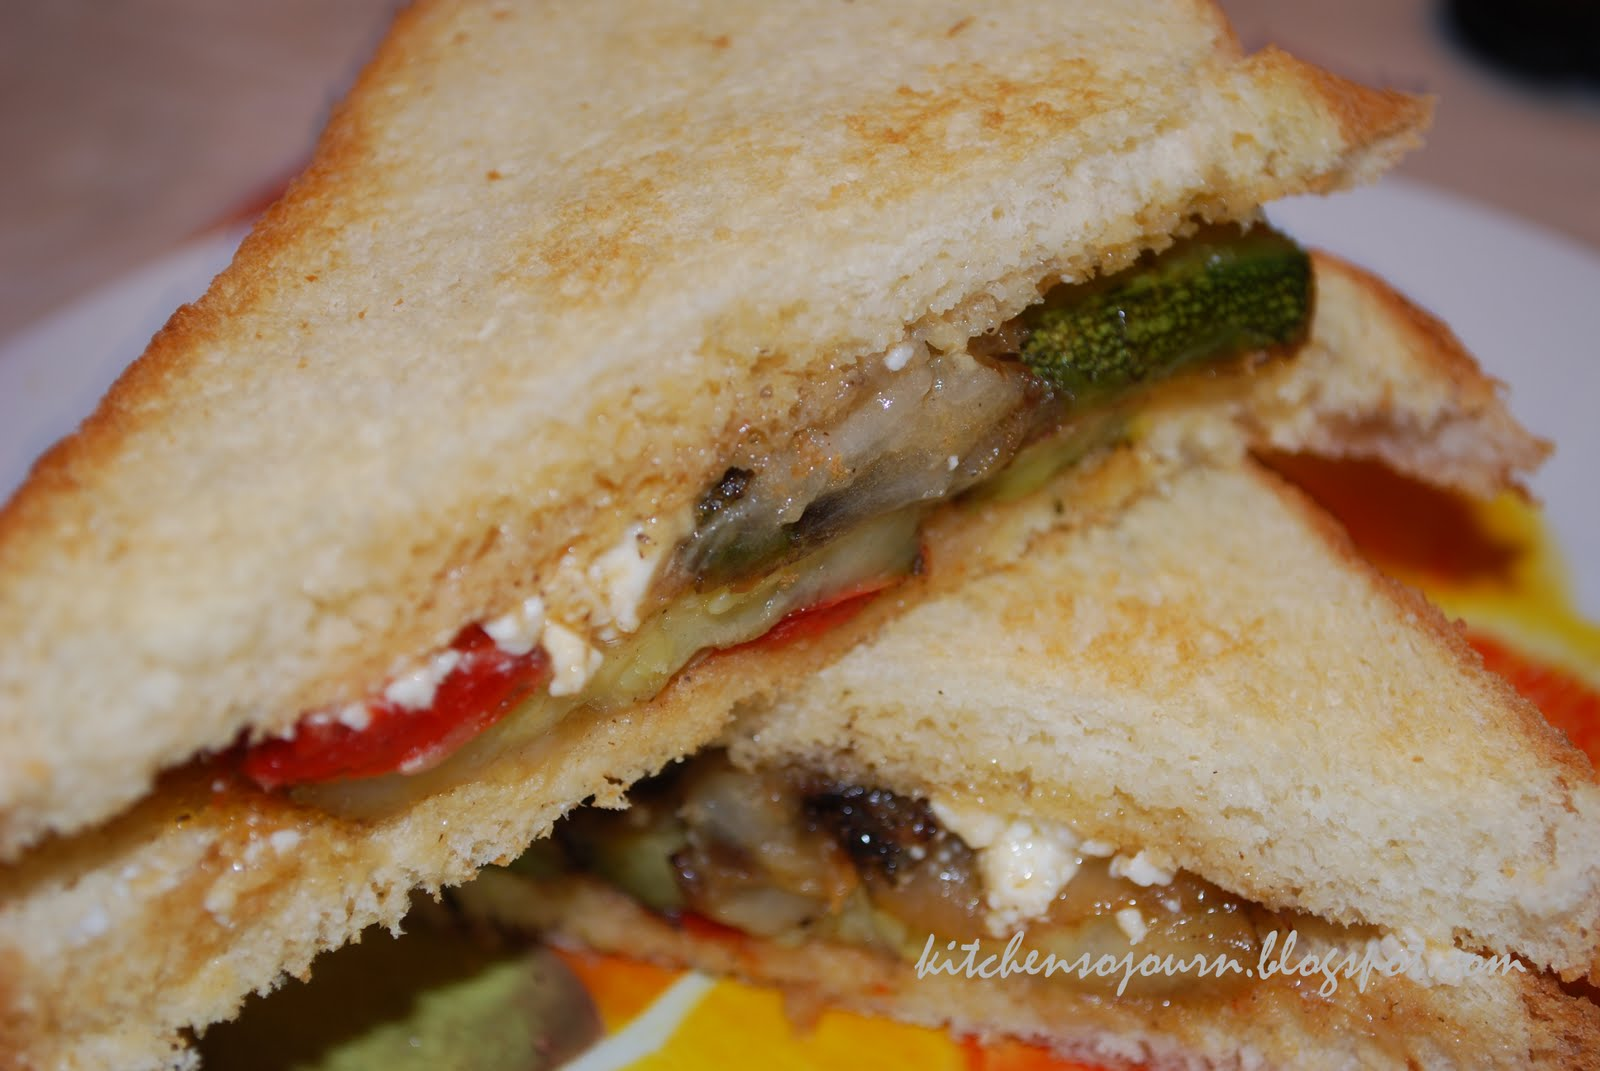 Kitchen Sojourn: Grilled Mediterranean Vegetable Sandwich